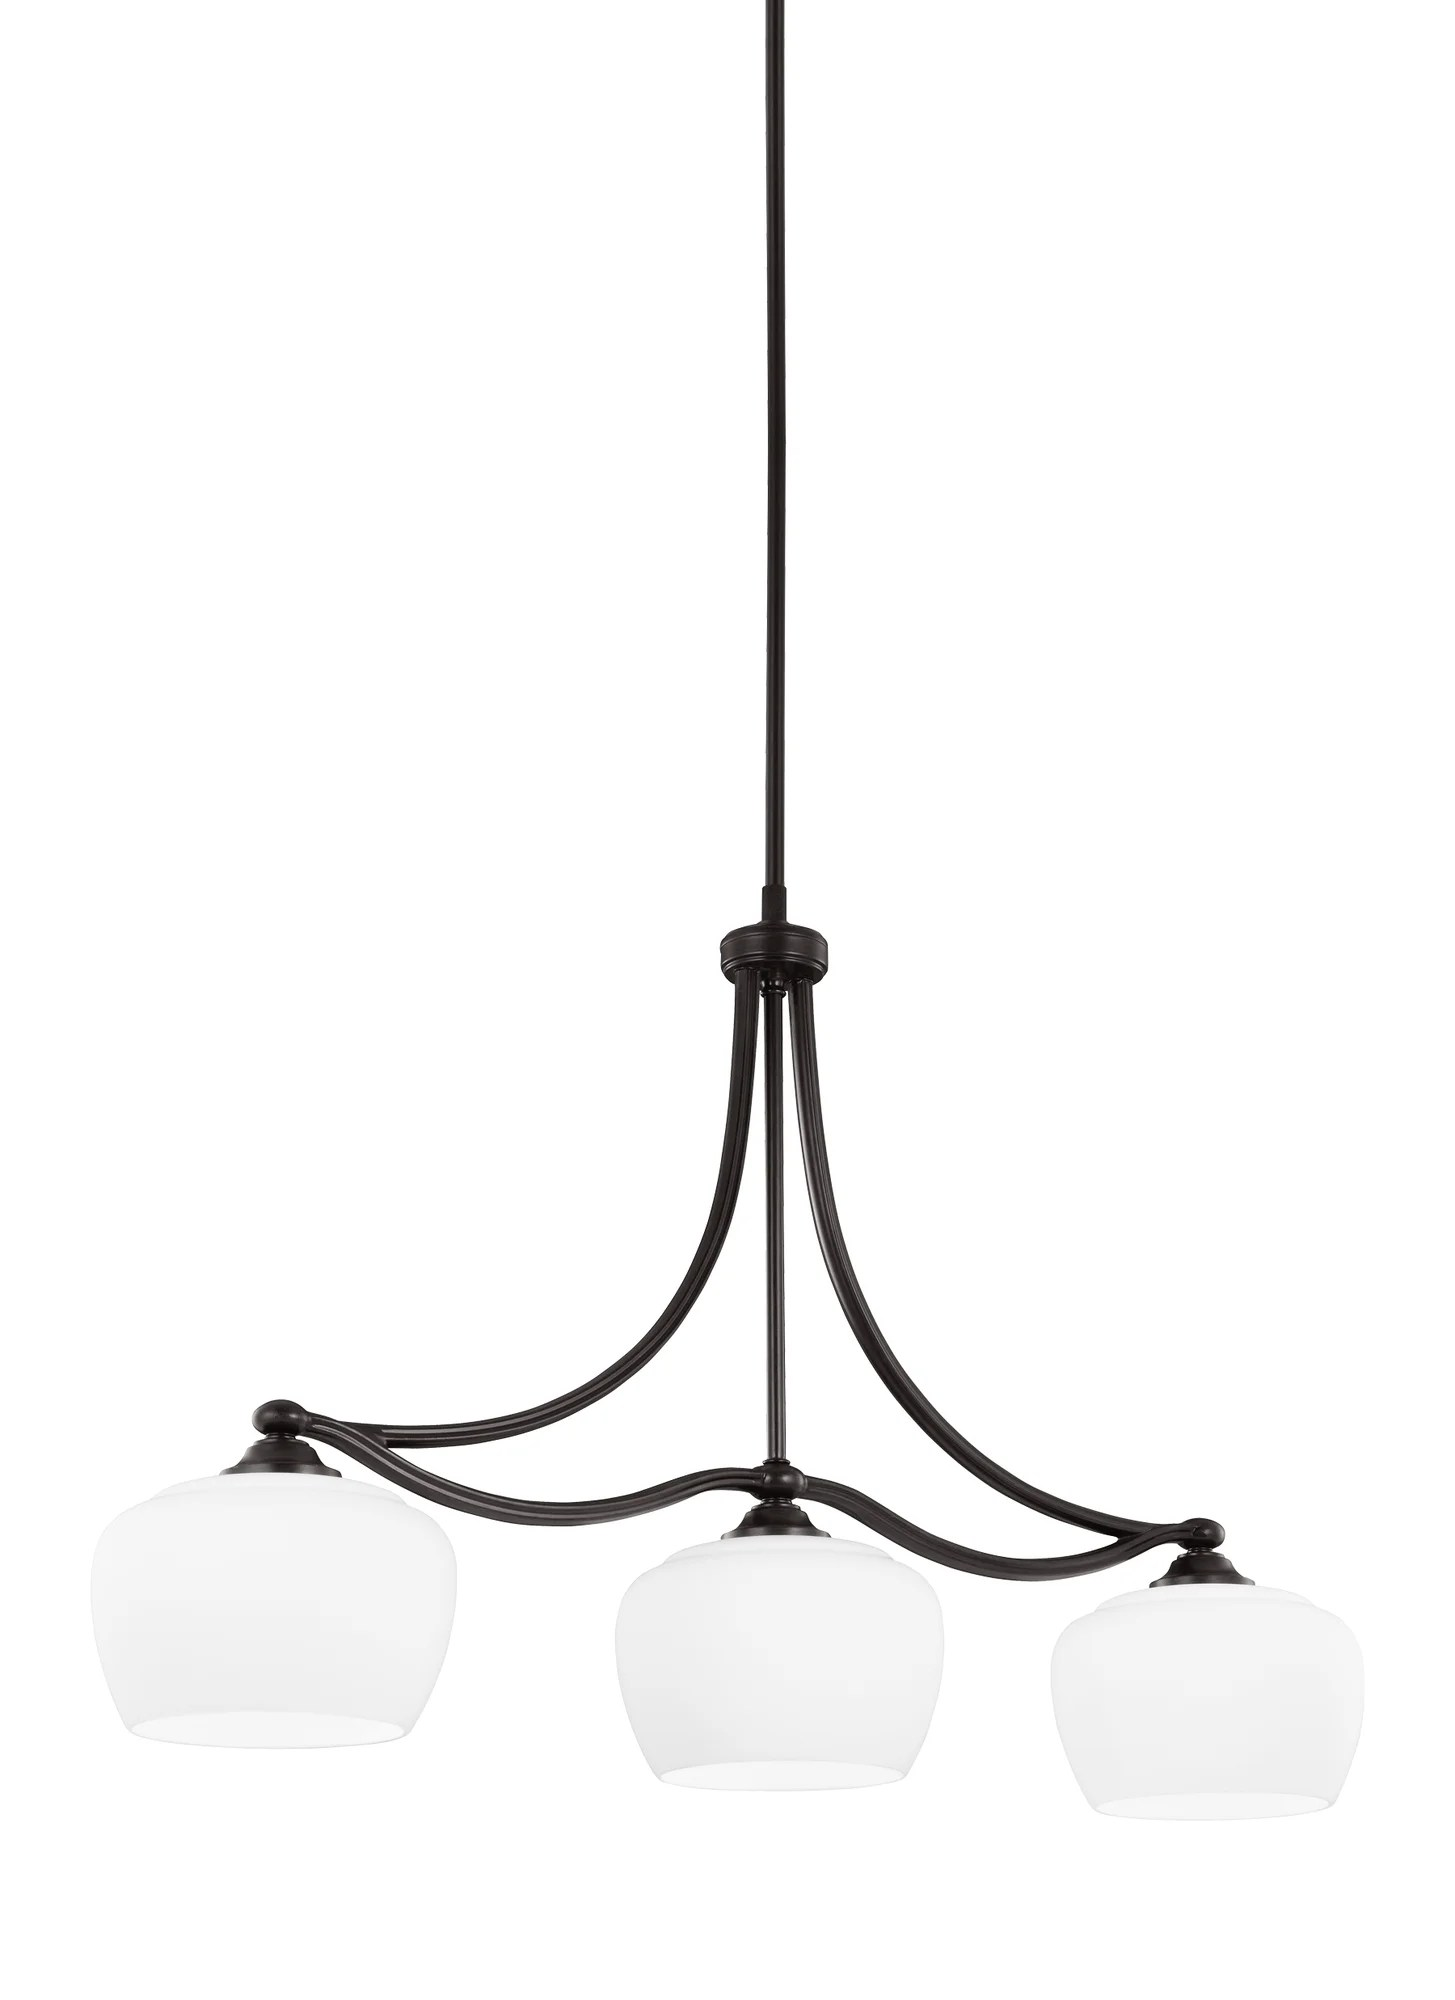 Darby Home Co Eyers 3 Light Pool Table Lights Pendant